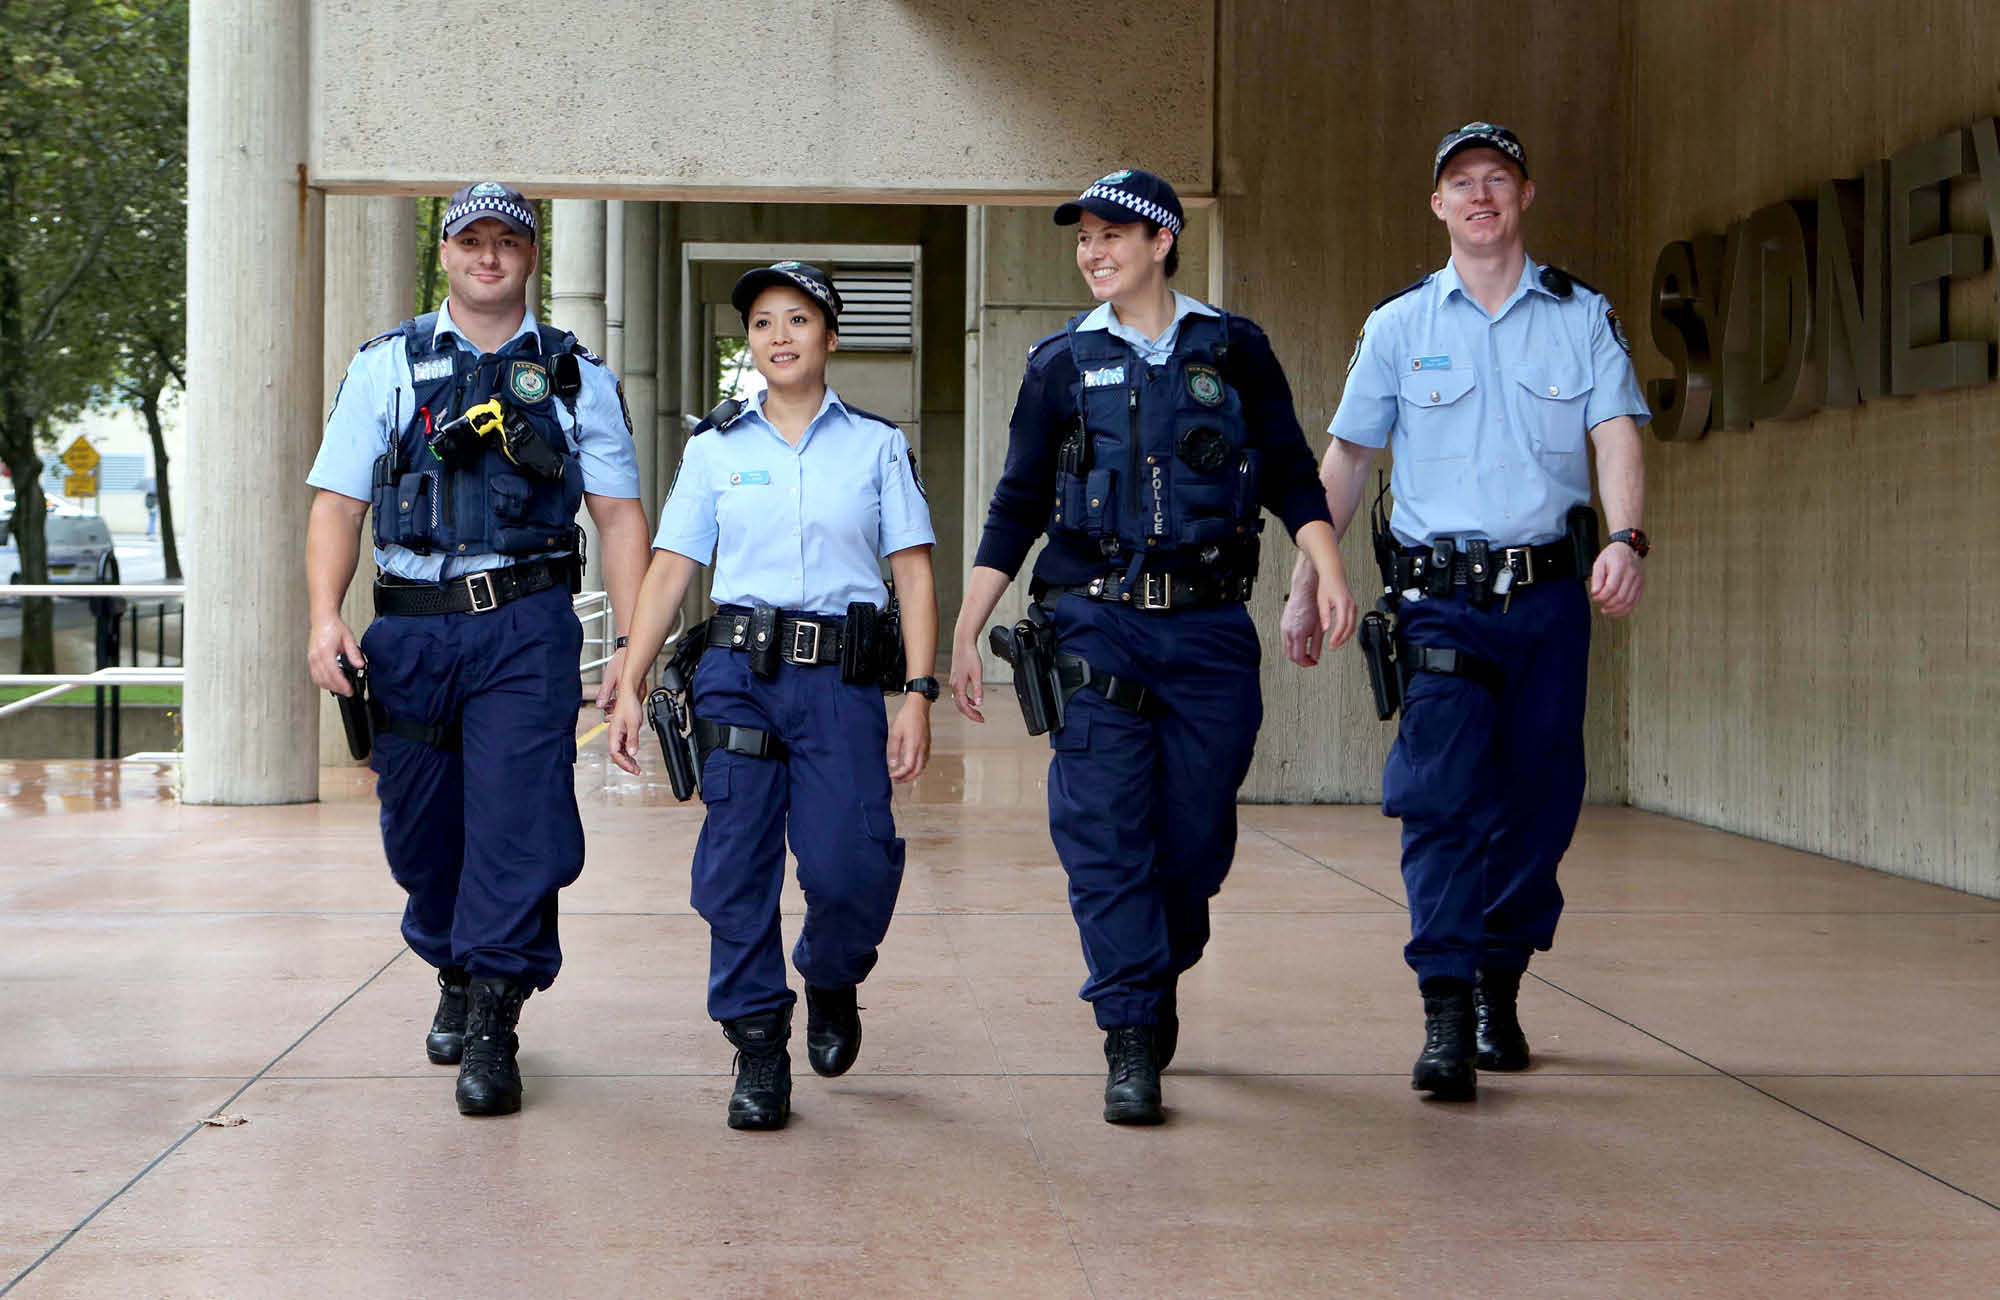 Bachelor of Policing and Public Safety